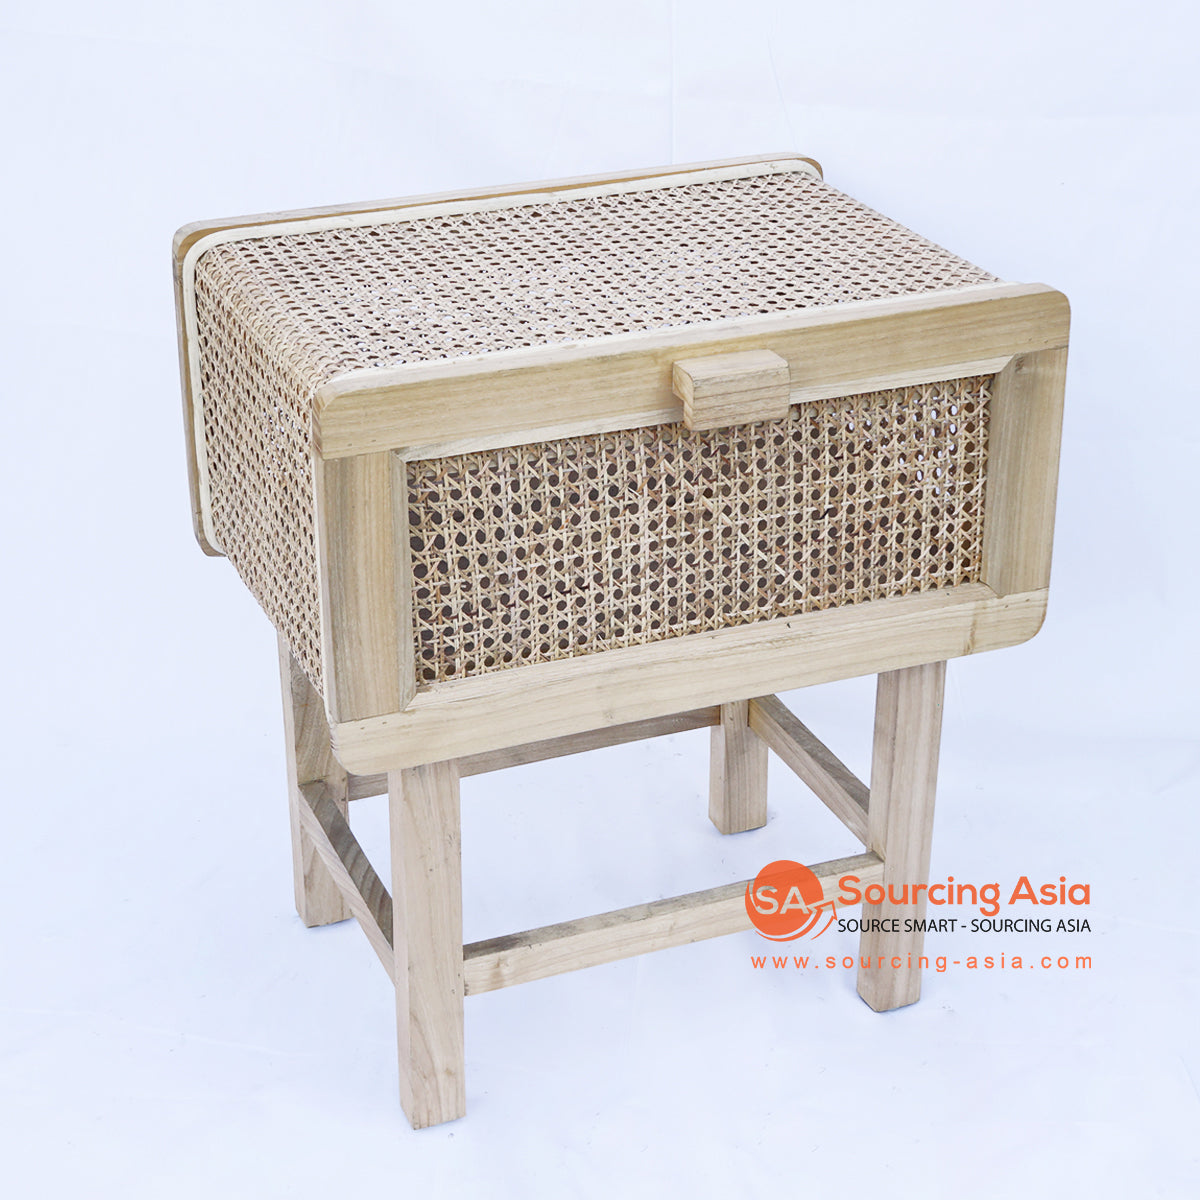 BNTC006-6 RATTAN BEDSIDE TABLE WITH FLIP DOWN DOOR